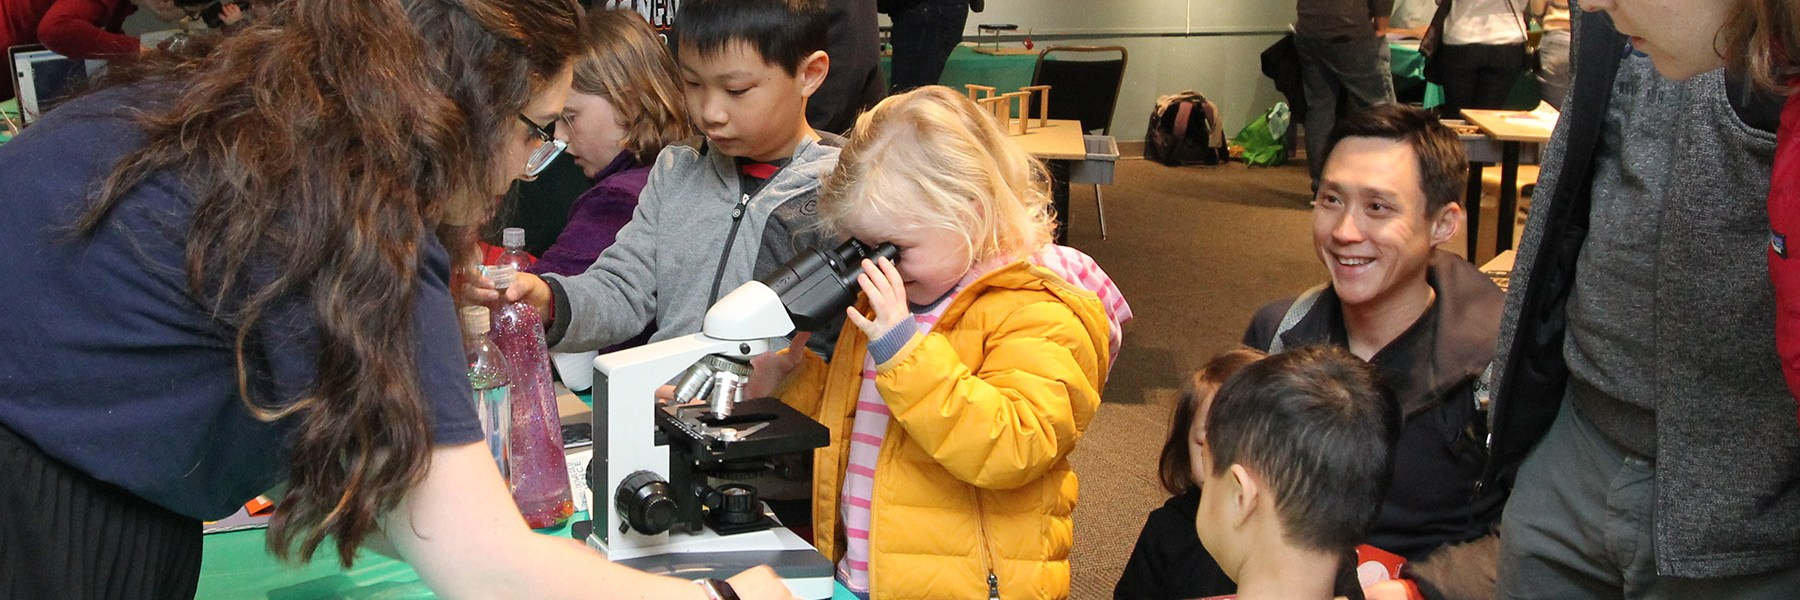 Girl-powered science event